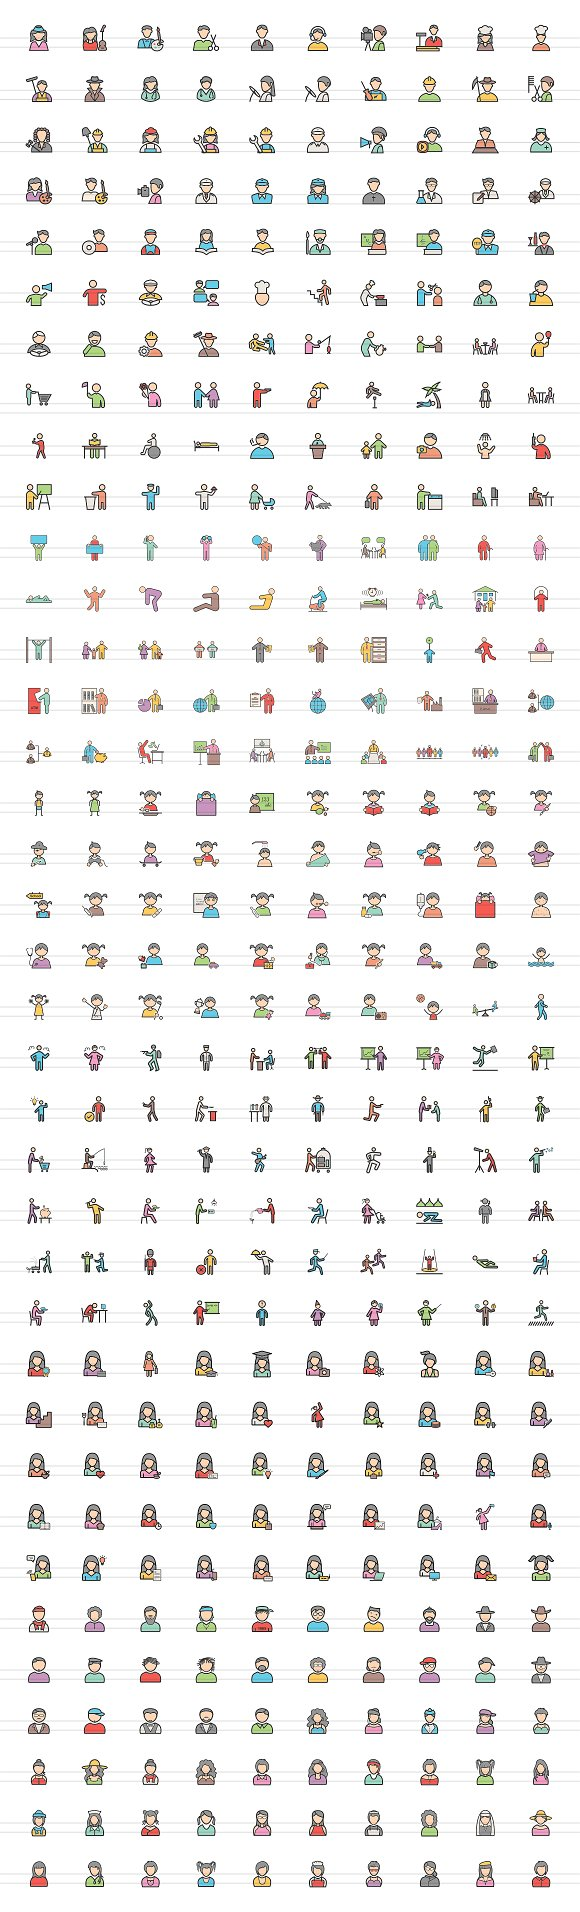 370 People FIlled Line Icons